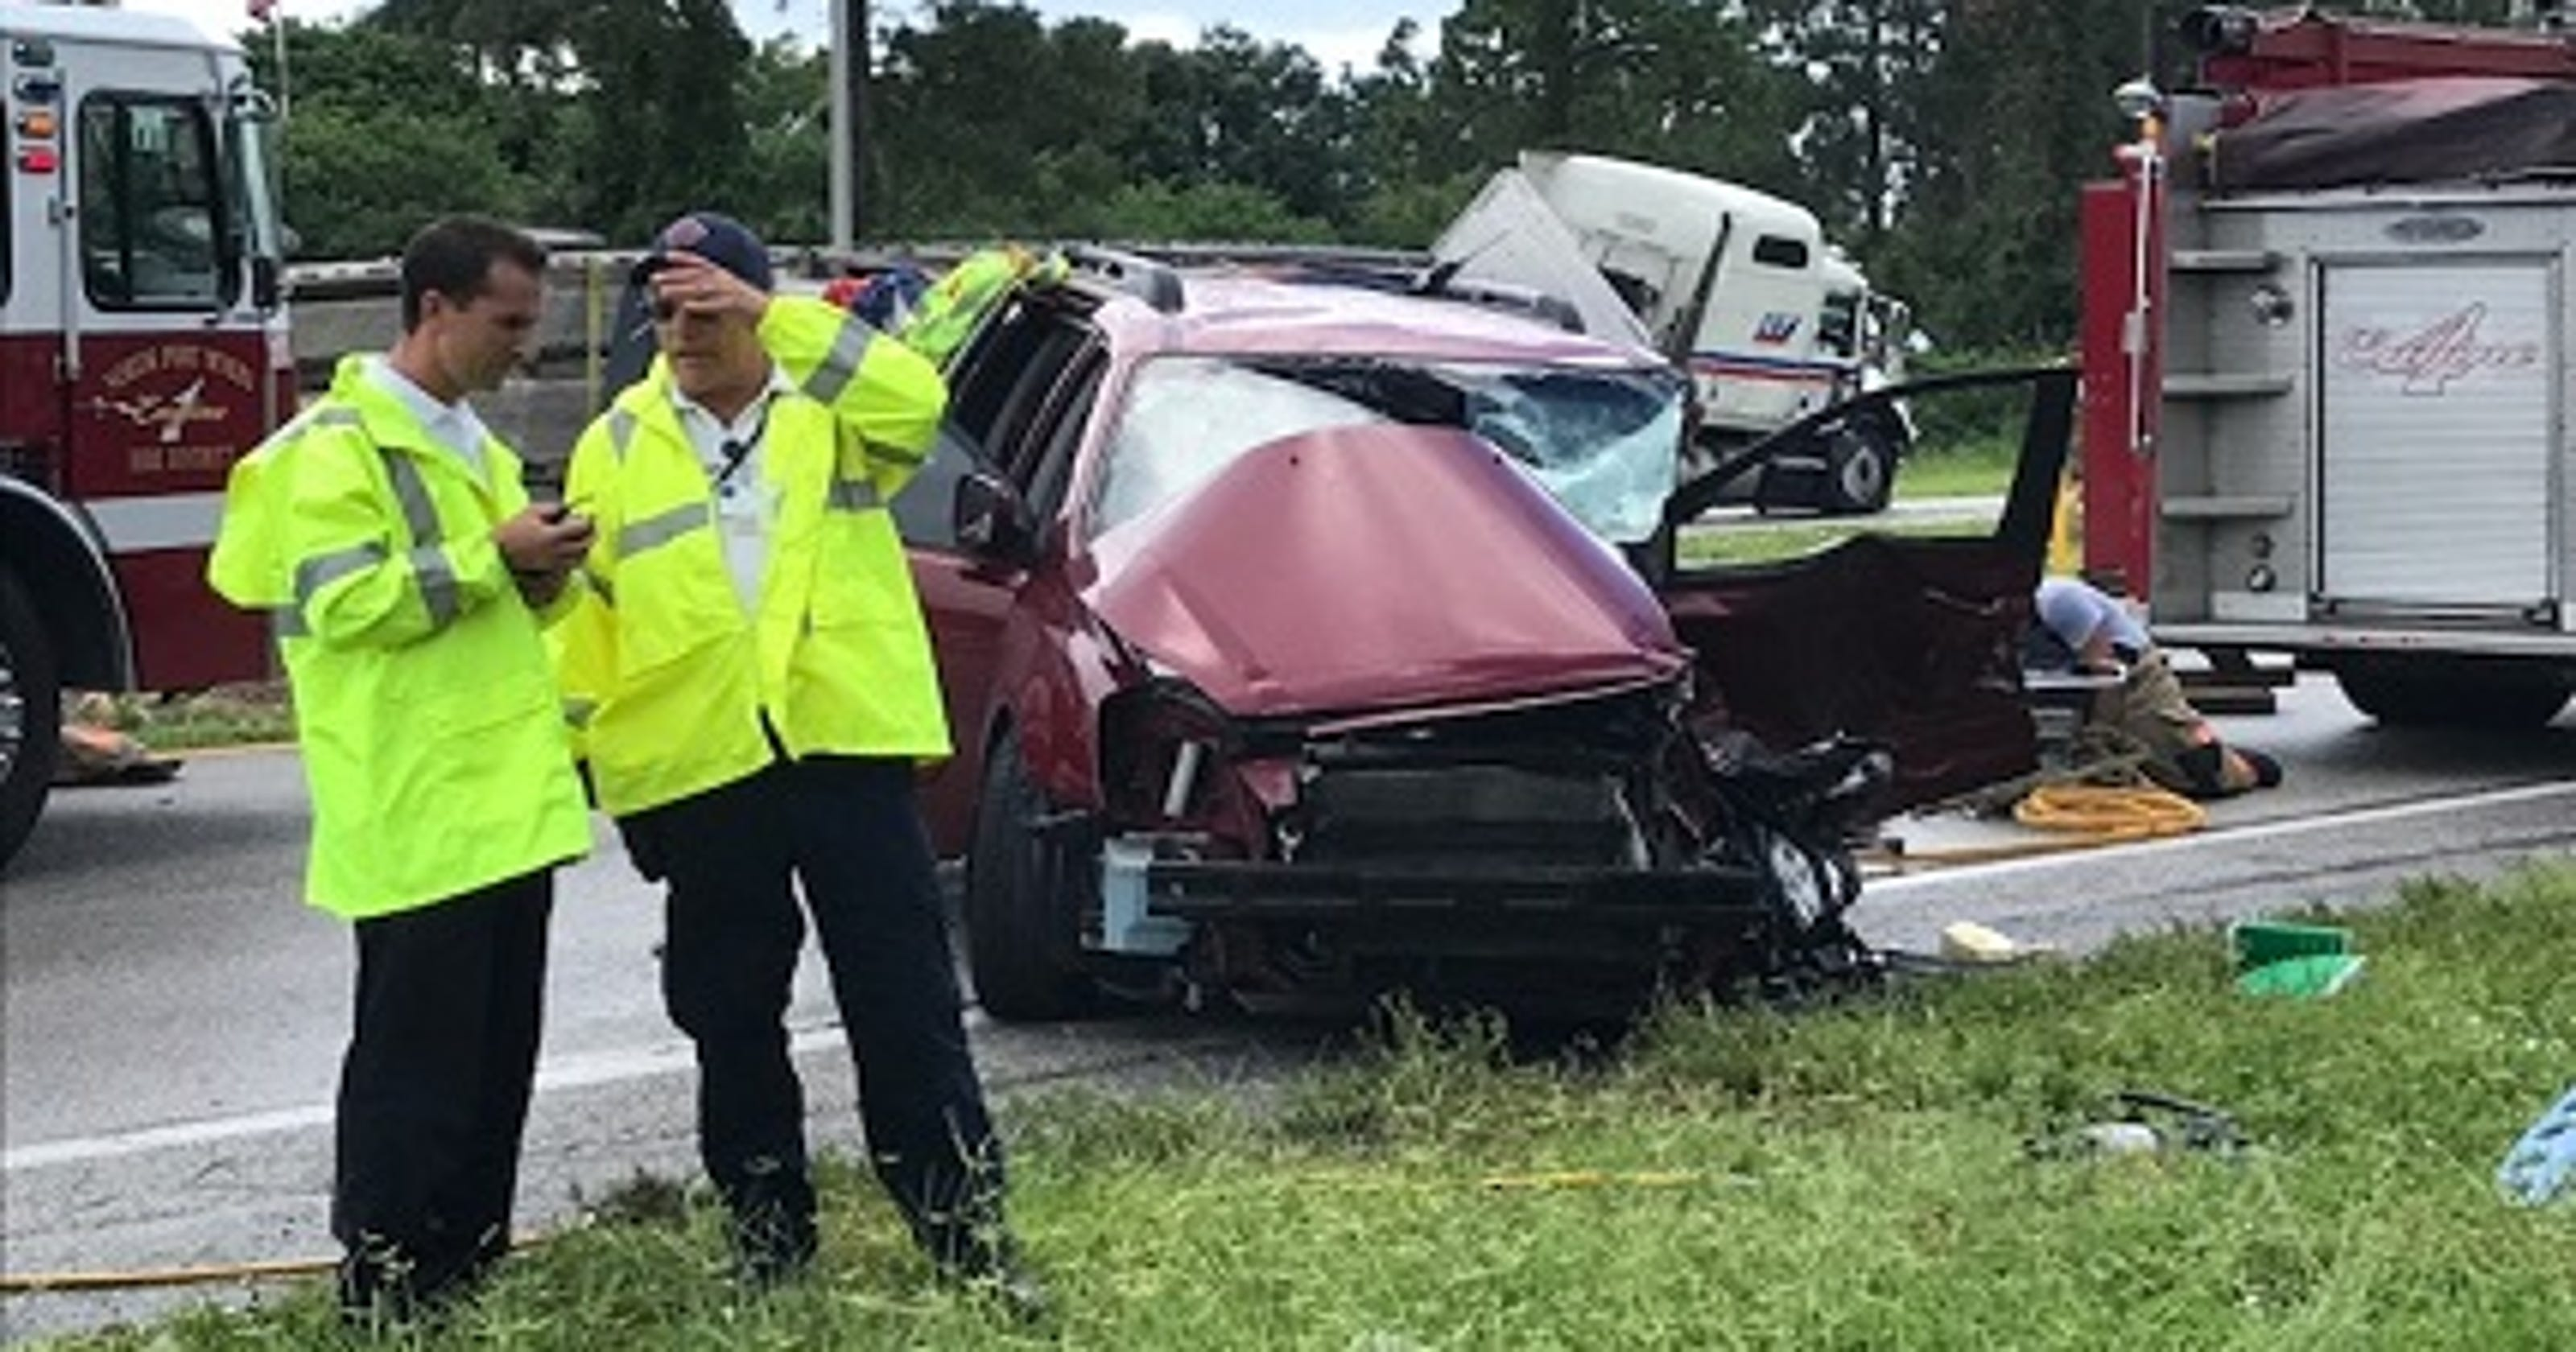 Three crashes in Lee County this week push death toll over 70